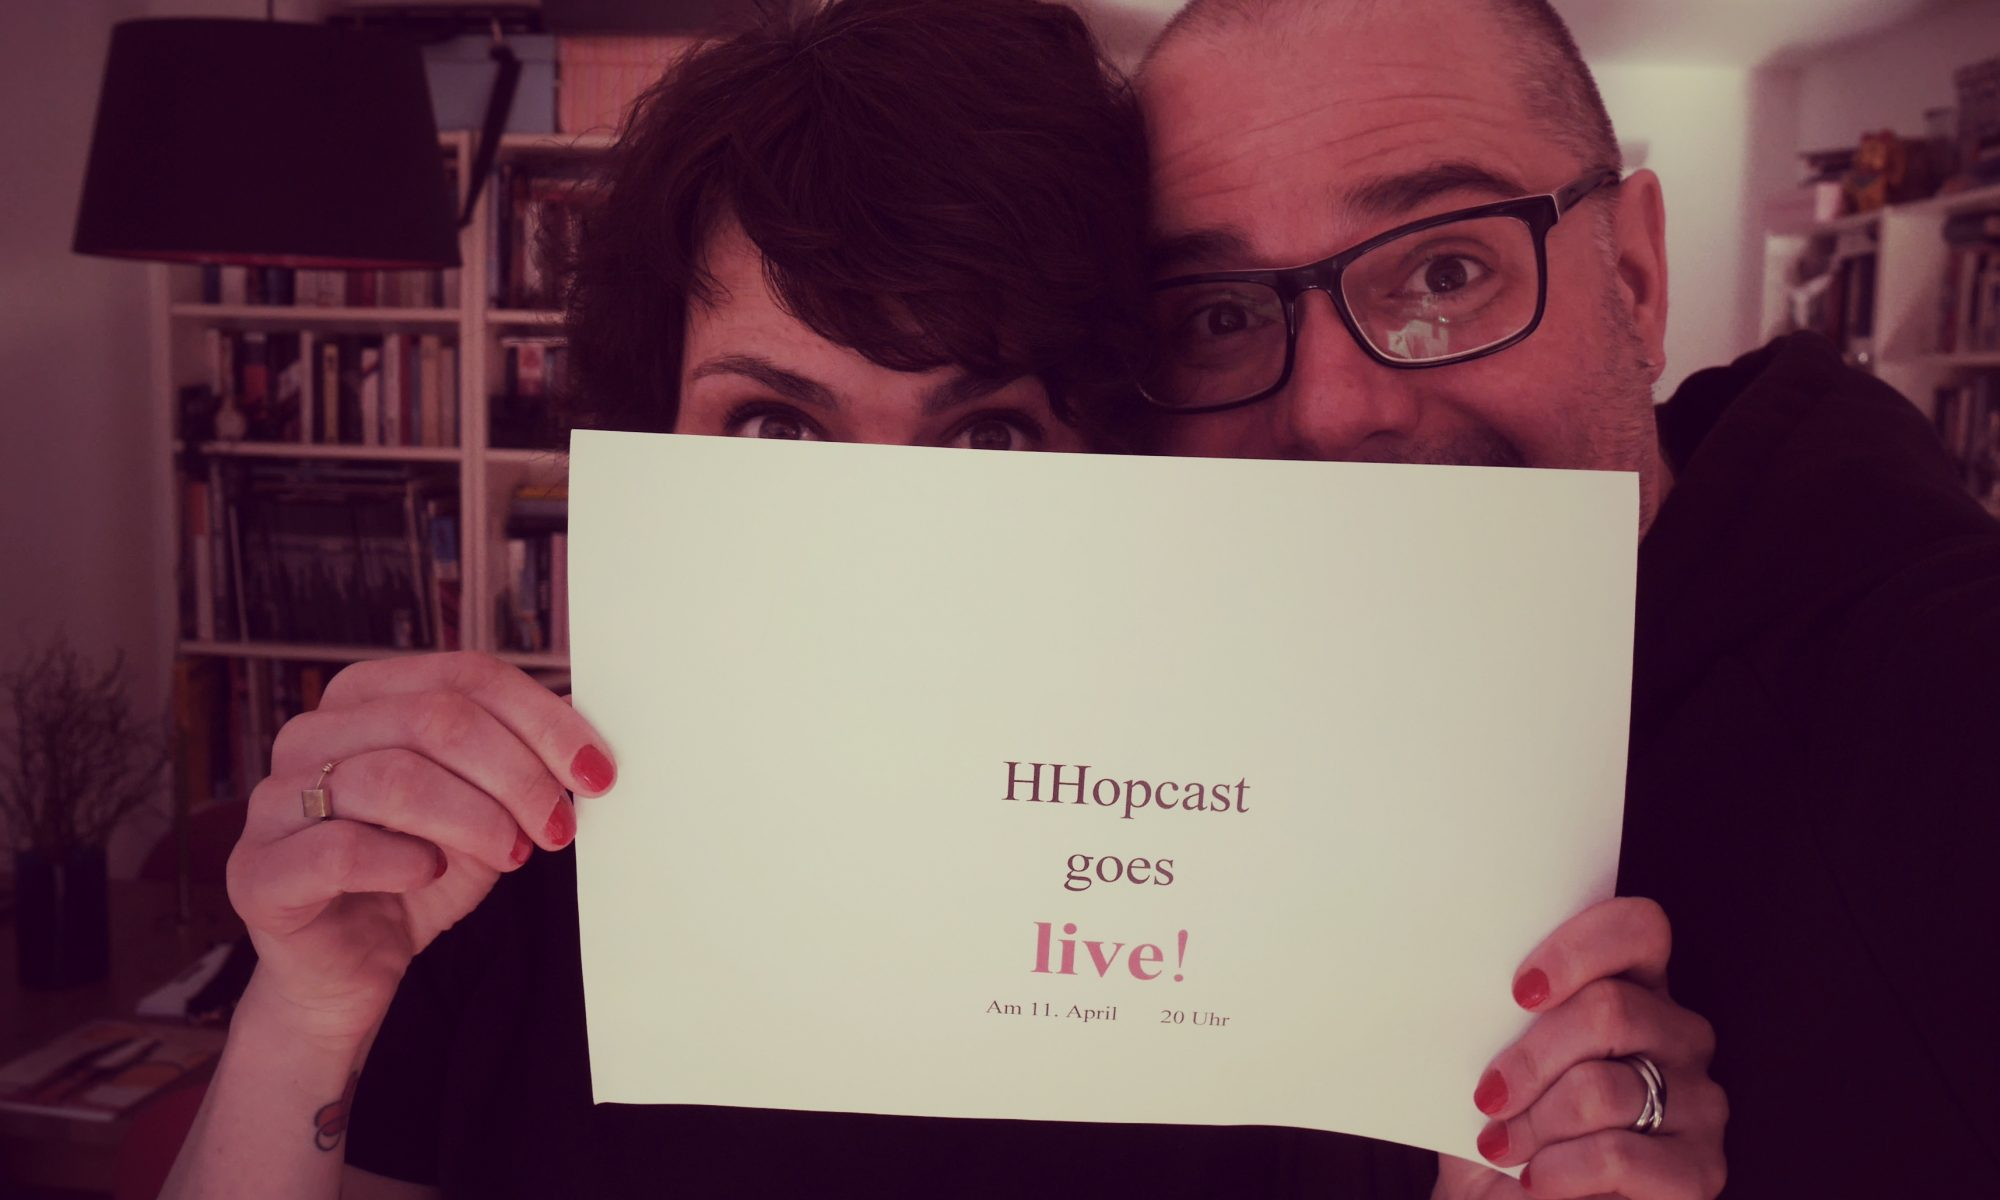 HHopcast Podcast Craft Beer Regine und Stefan